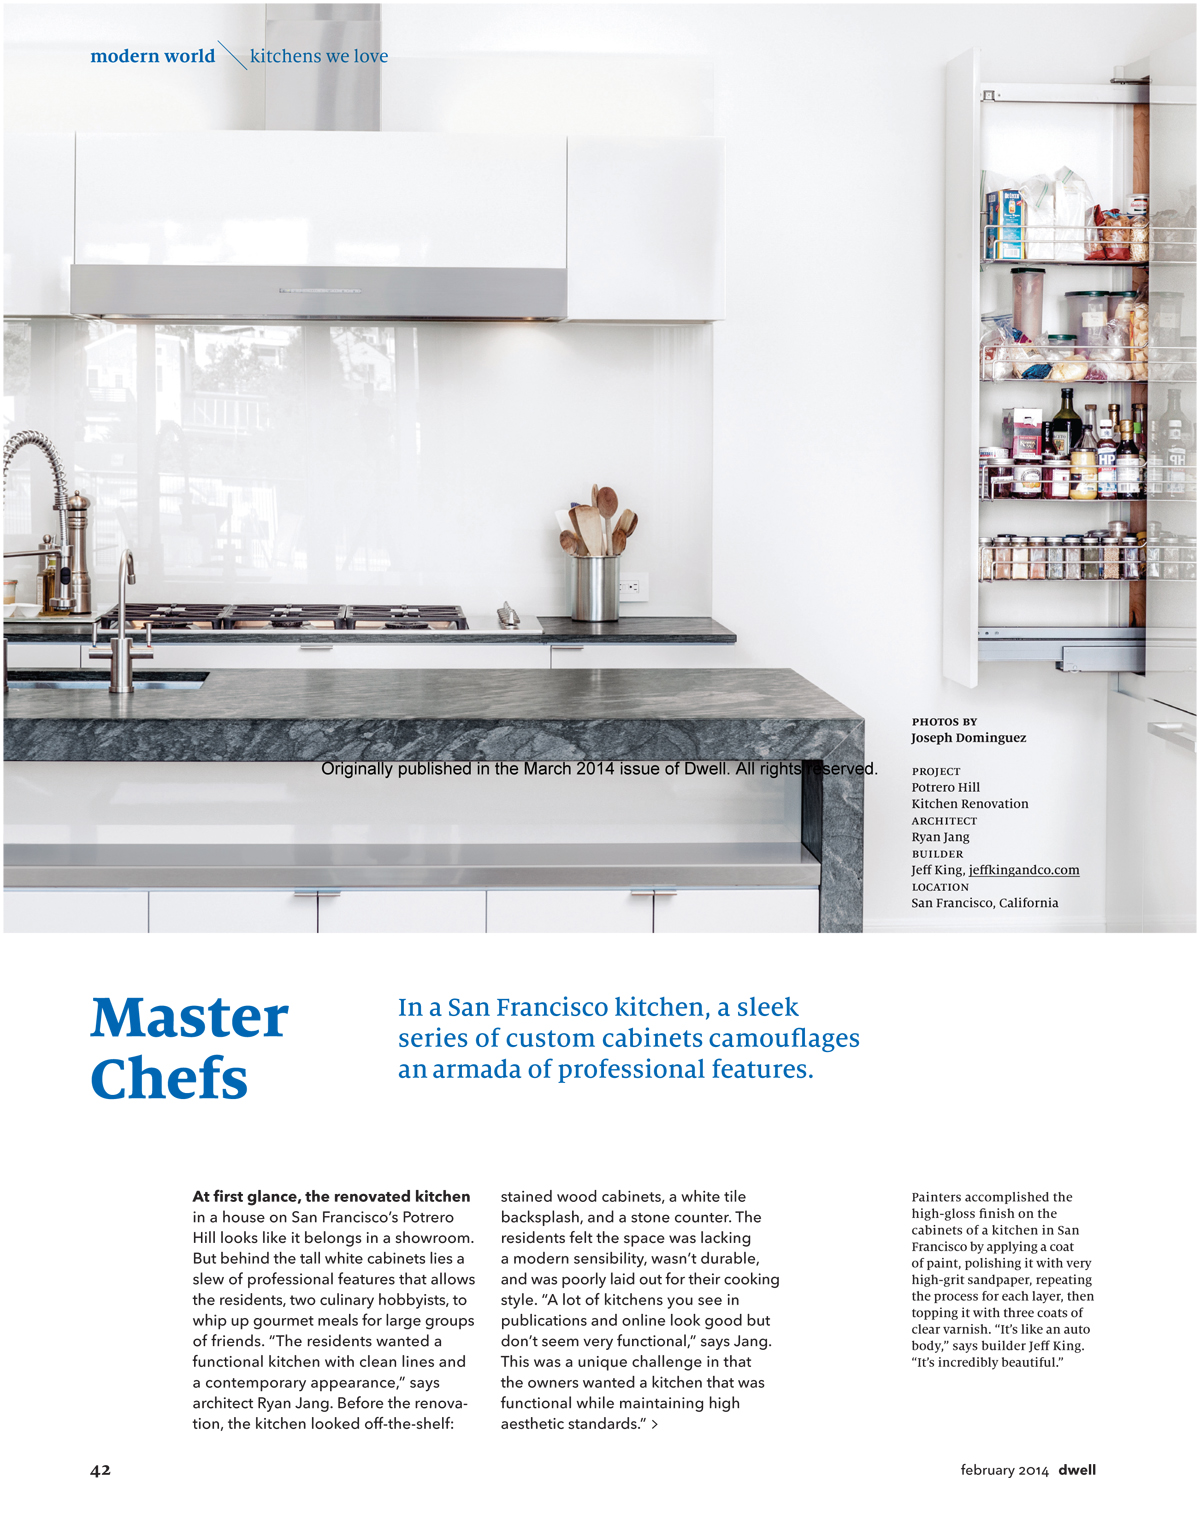 Dwell Kitchen Remodel Dwell Features Our San Francisco Master Chefs Kitchen